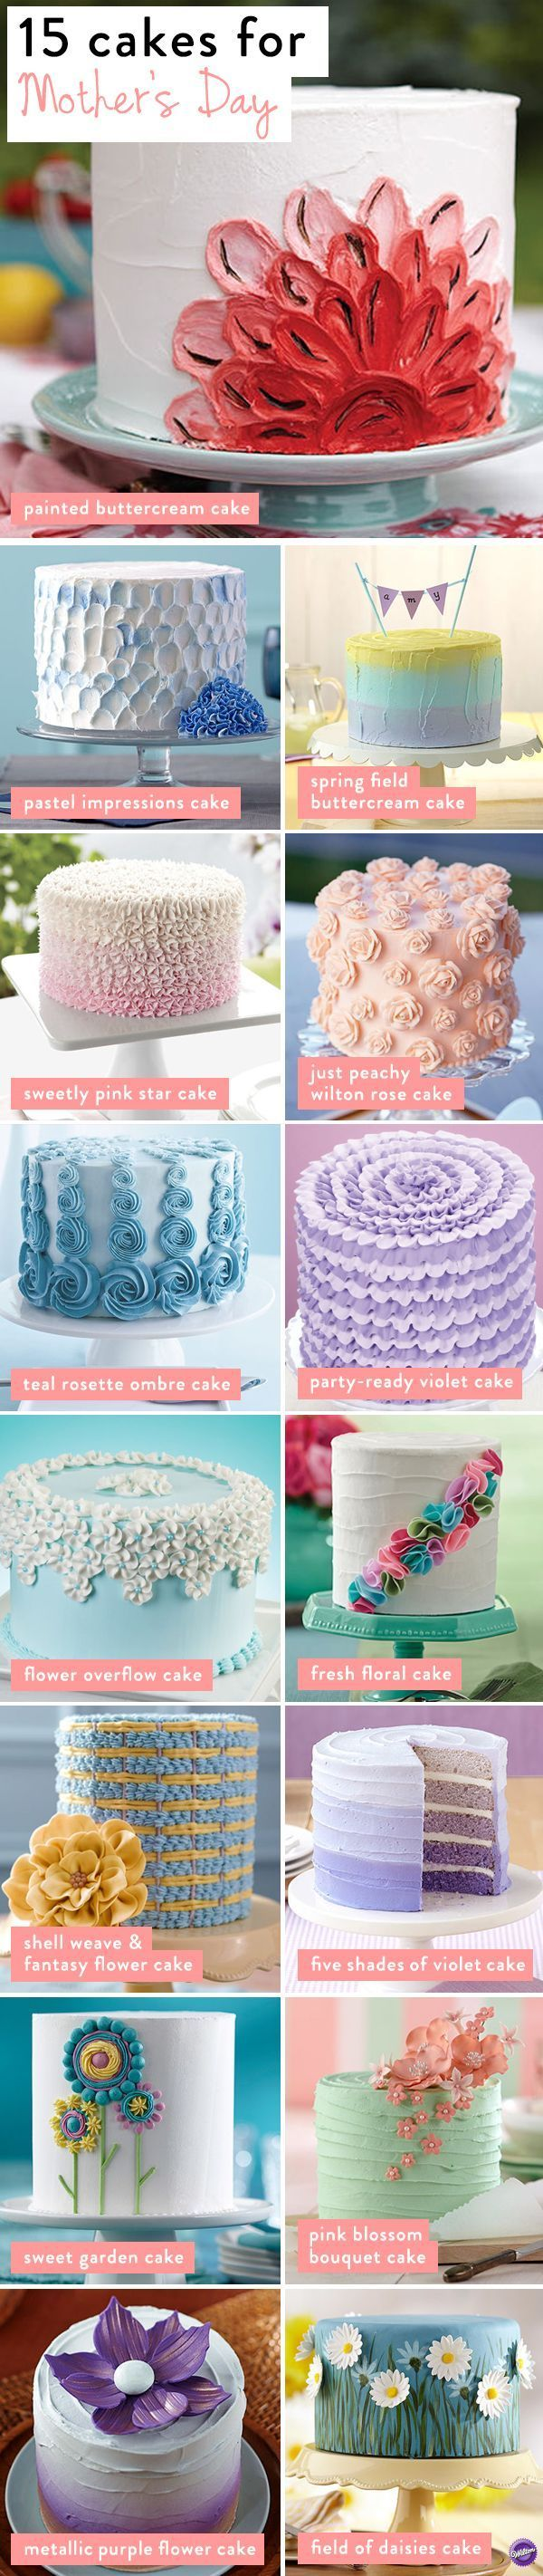 Whatever your skill level is - beginner or advanced - there's sure to be a cake here that you can make for mom. Check out these 15 cakes for Mother's Day.